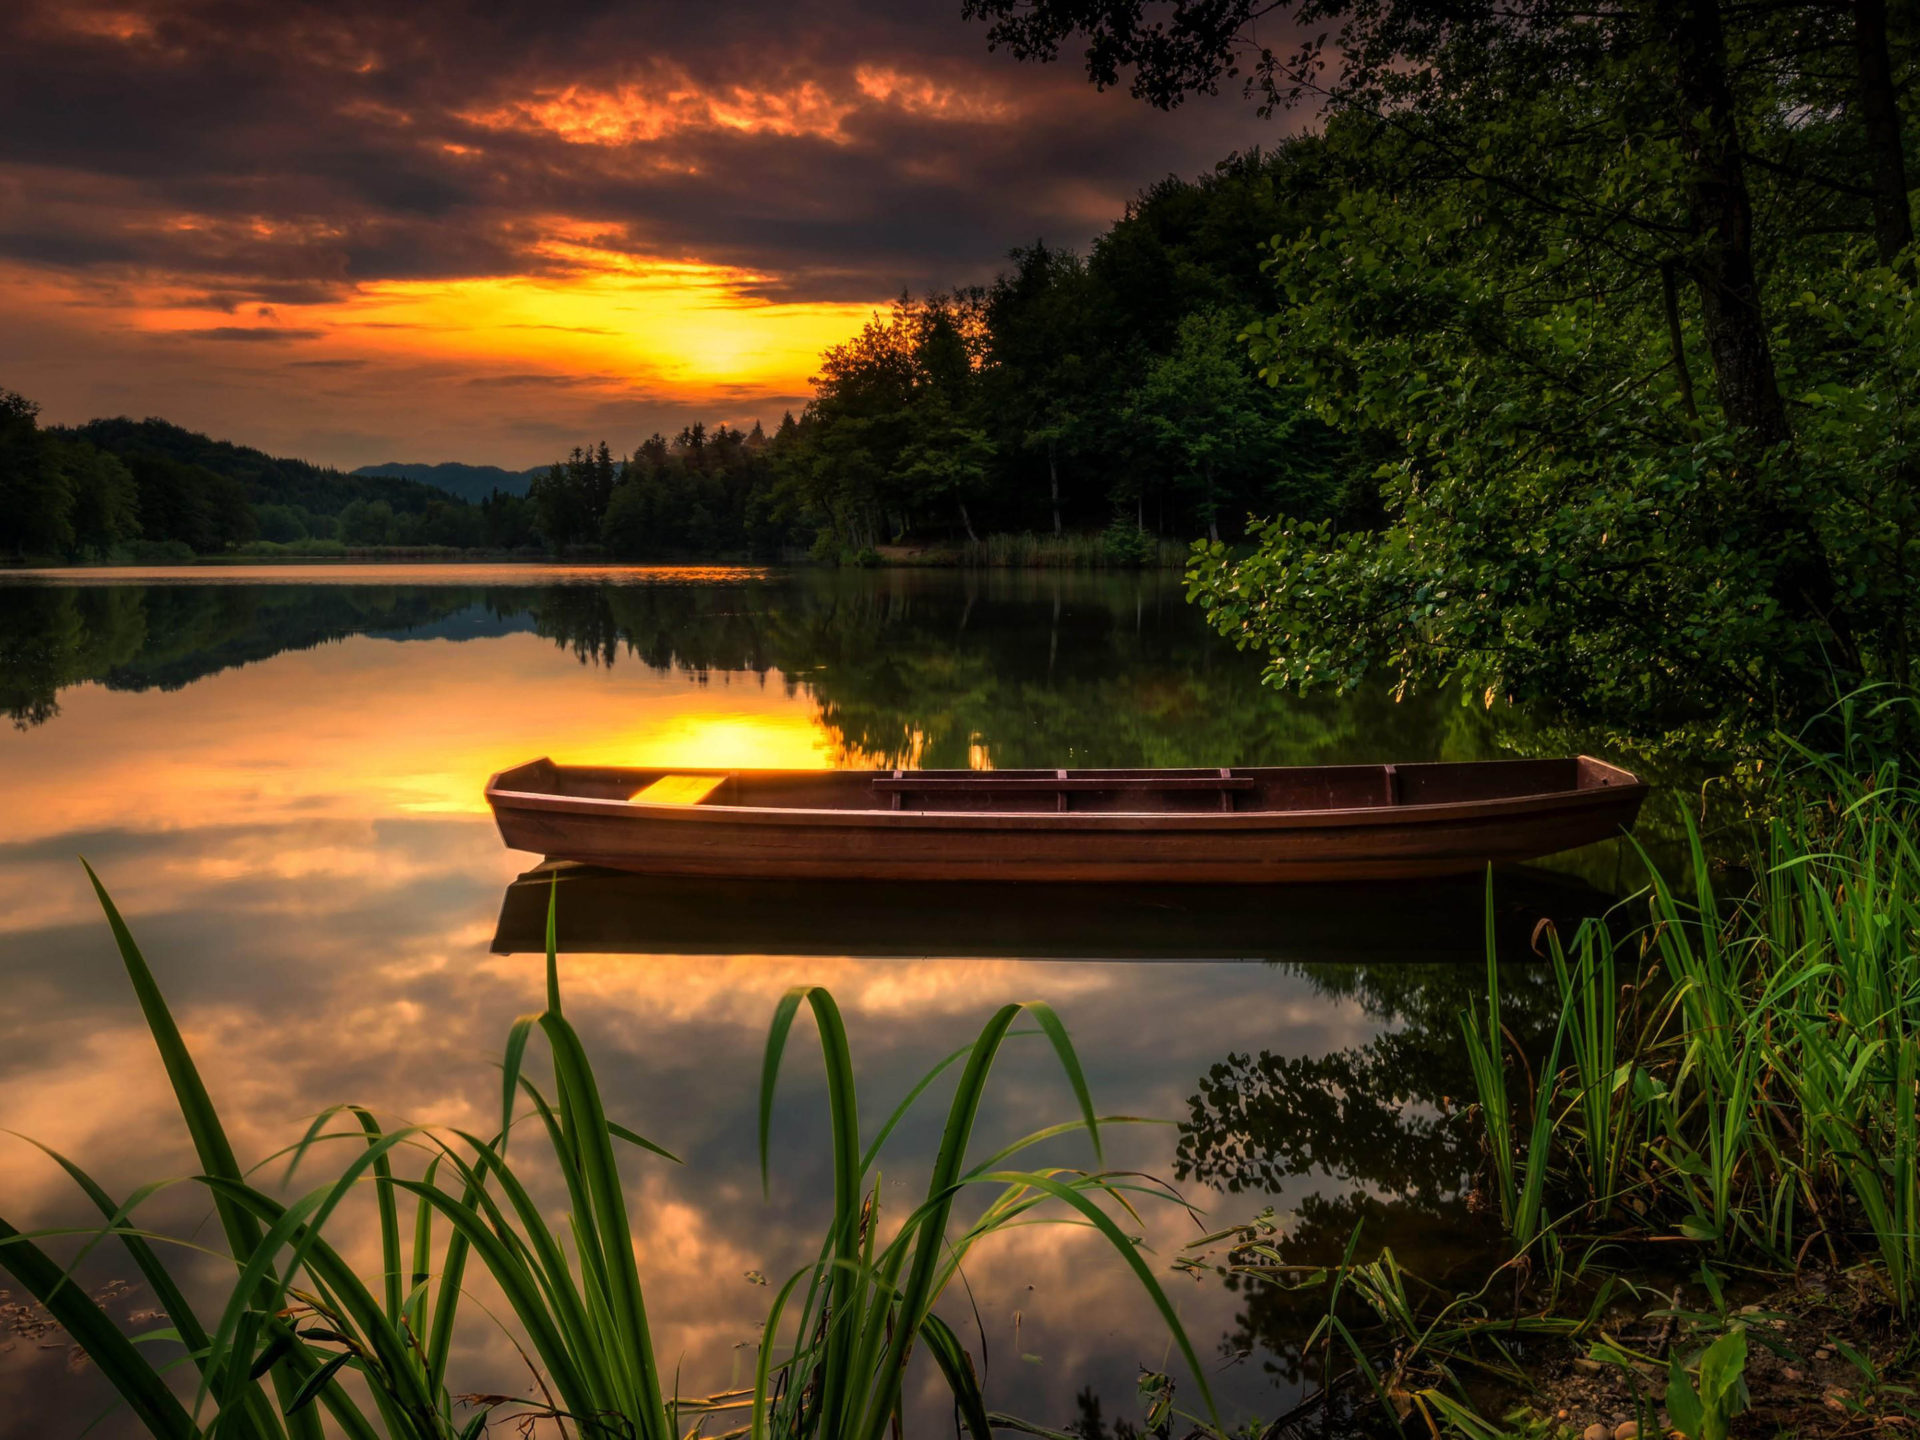 Mountain Wallpaper Iphone X Landscape Nature Sunset Orange Sky Forest Lake Boat Green